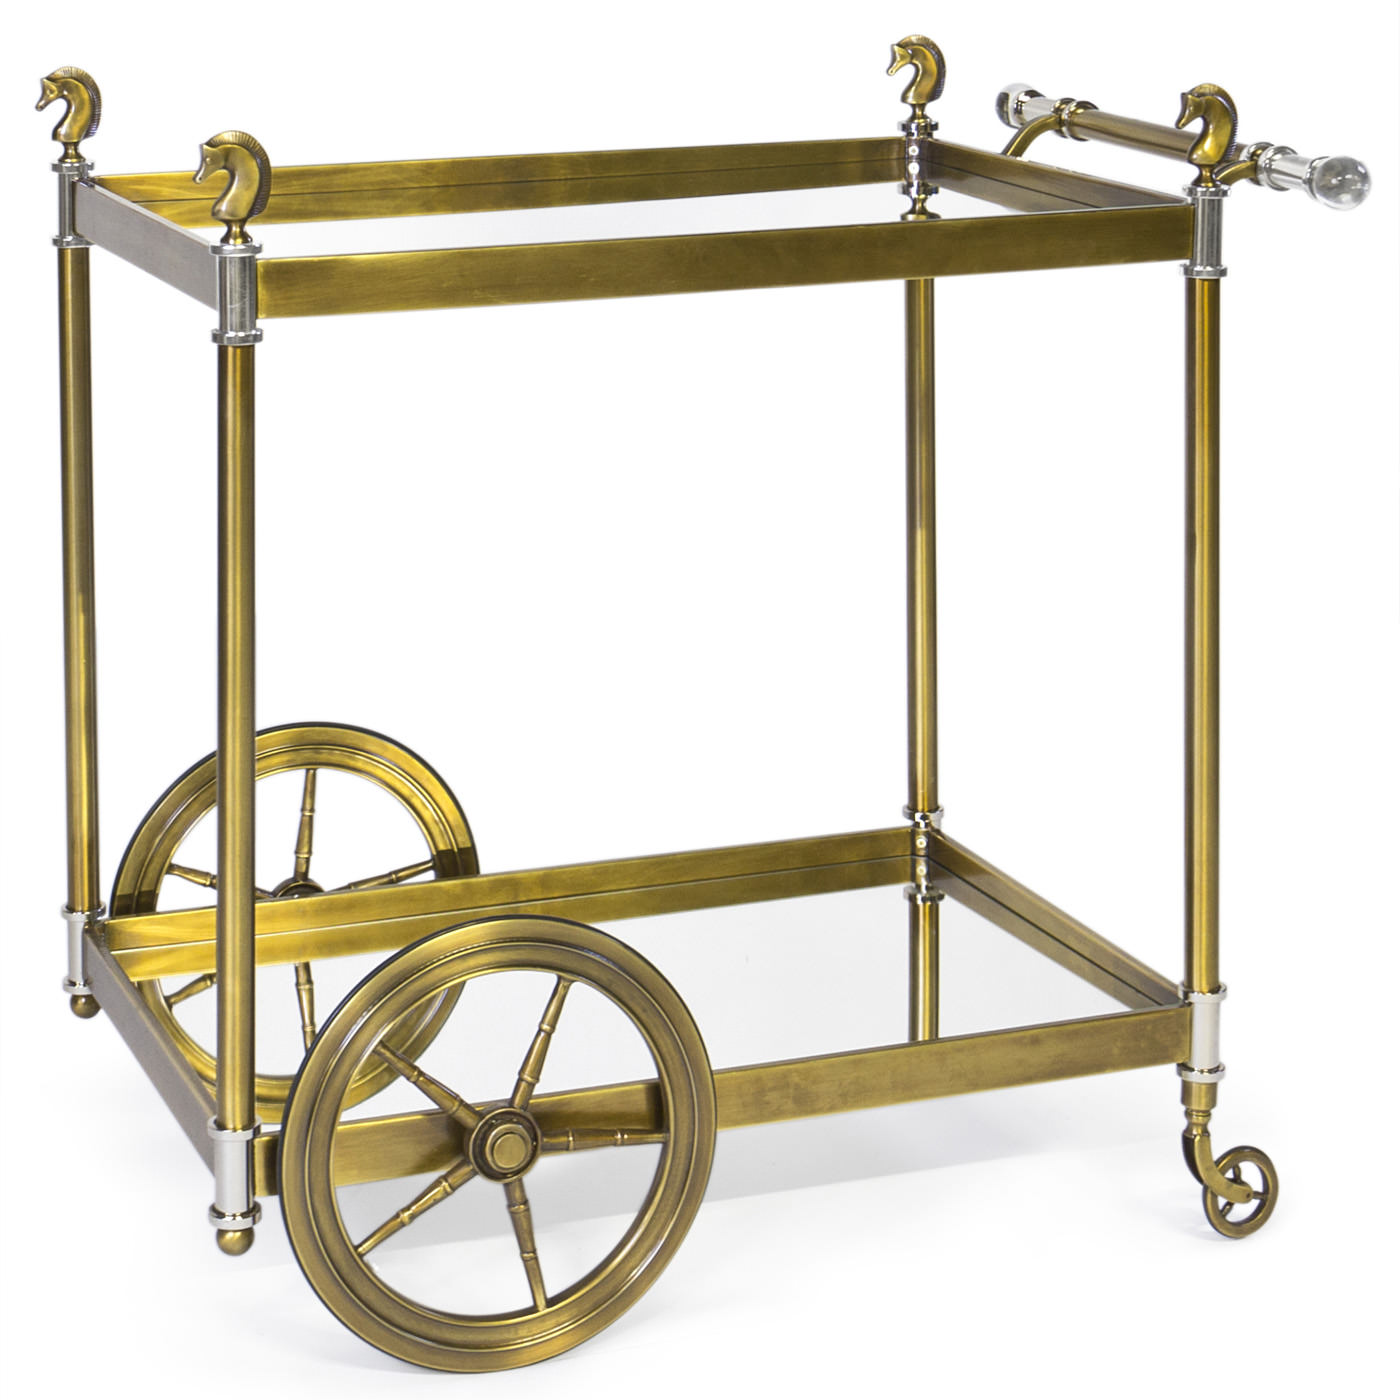 Creative Bar Carts For Bar Furniture Ideas With Gold Bar Cart And Diy Bar Cart